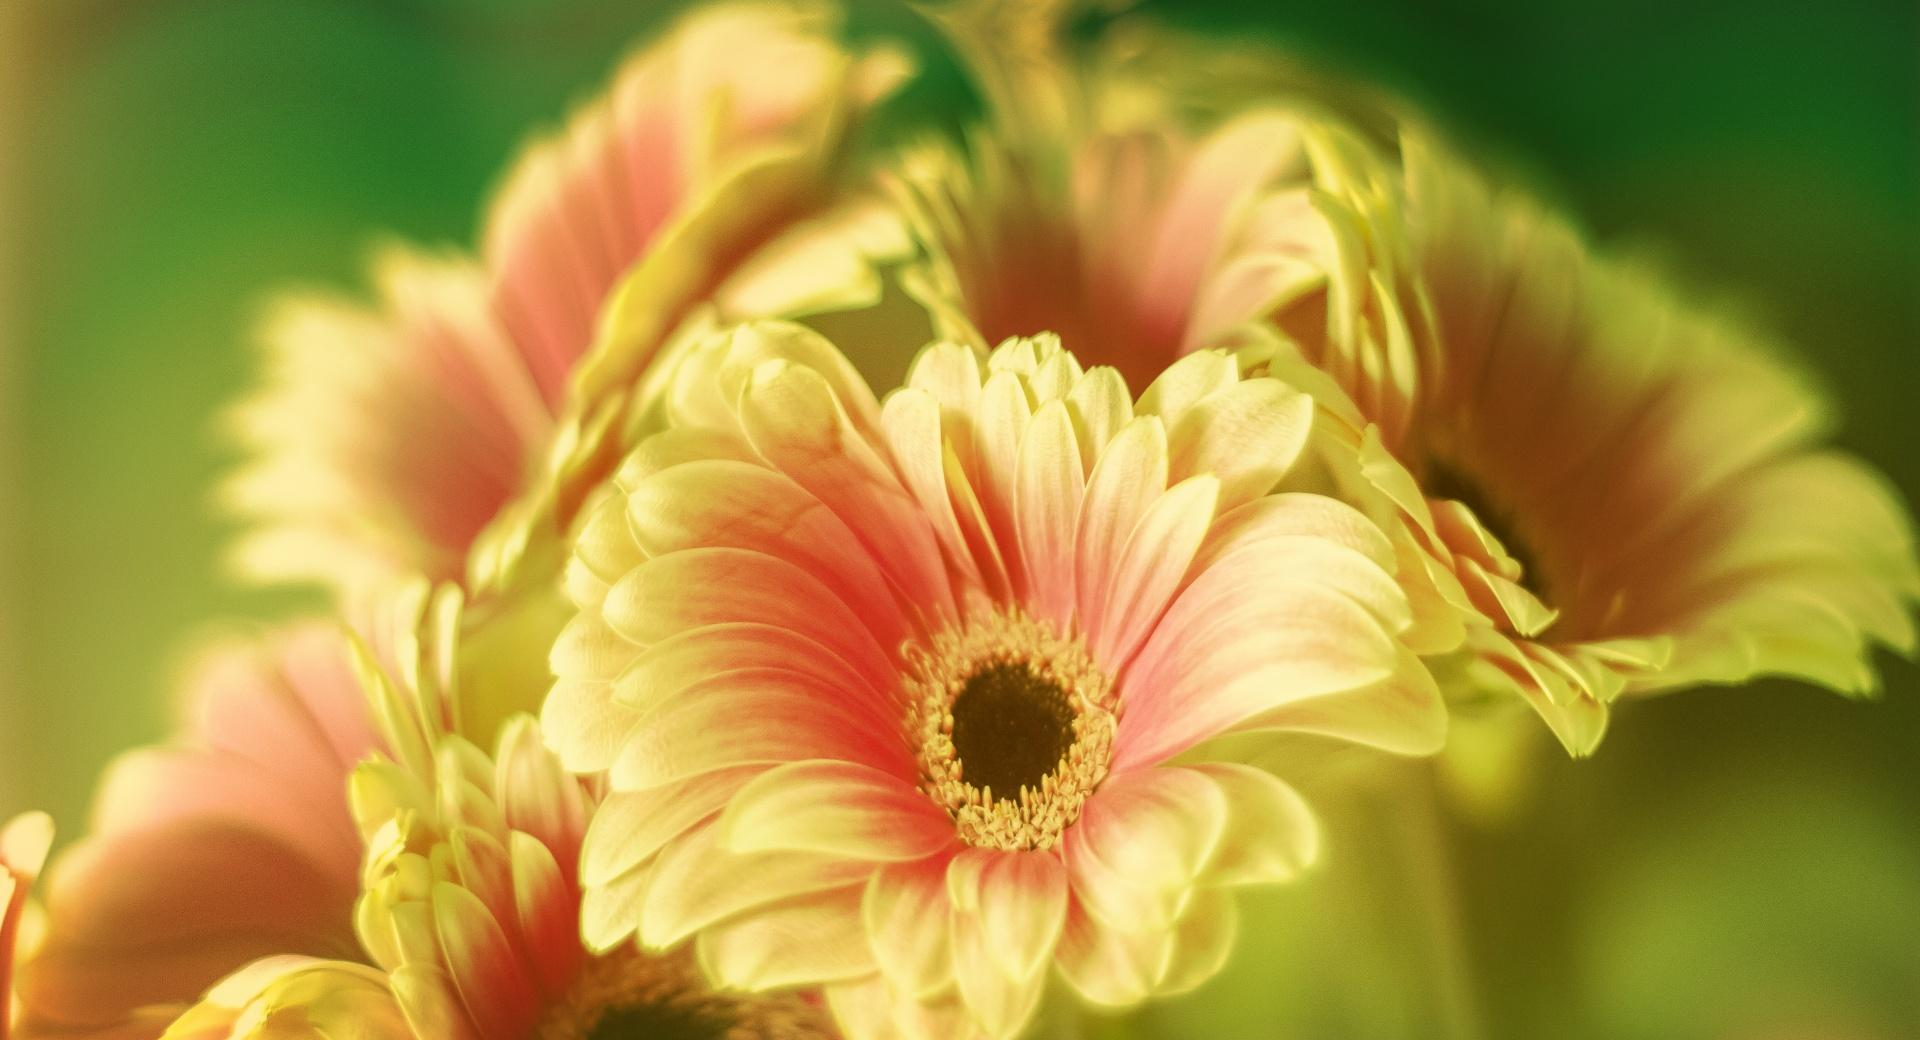 Gerbera Daisy Bouquet wallpapers HD quality